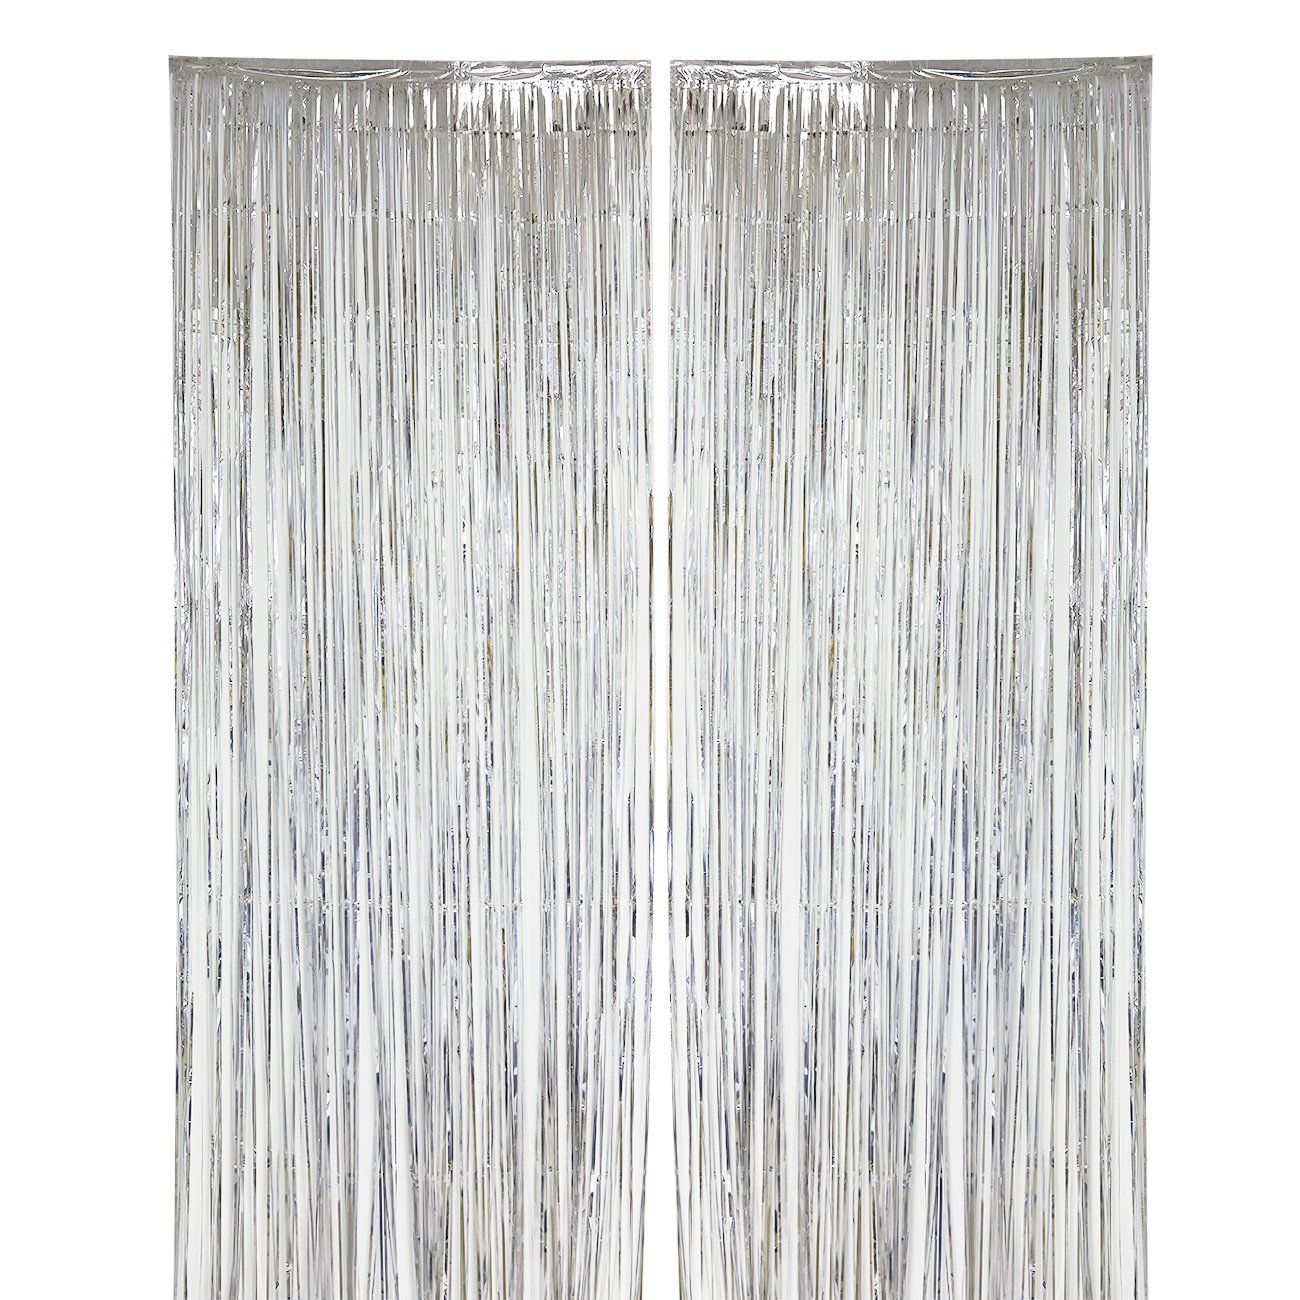 2pack Silver Fringe Curtains Wedding Photo Backdrop Metallic Tinsel Foil Fringe Curtain Party D Curtain Fringe Photo Backdrop Wedding Frozen Party Decorations